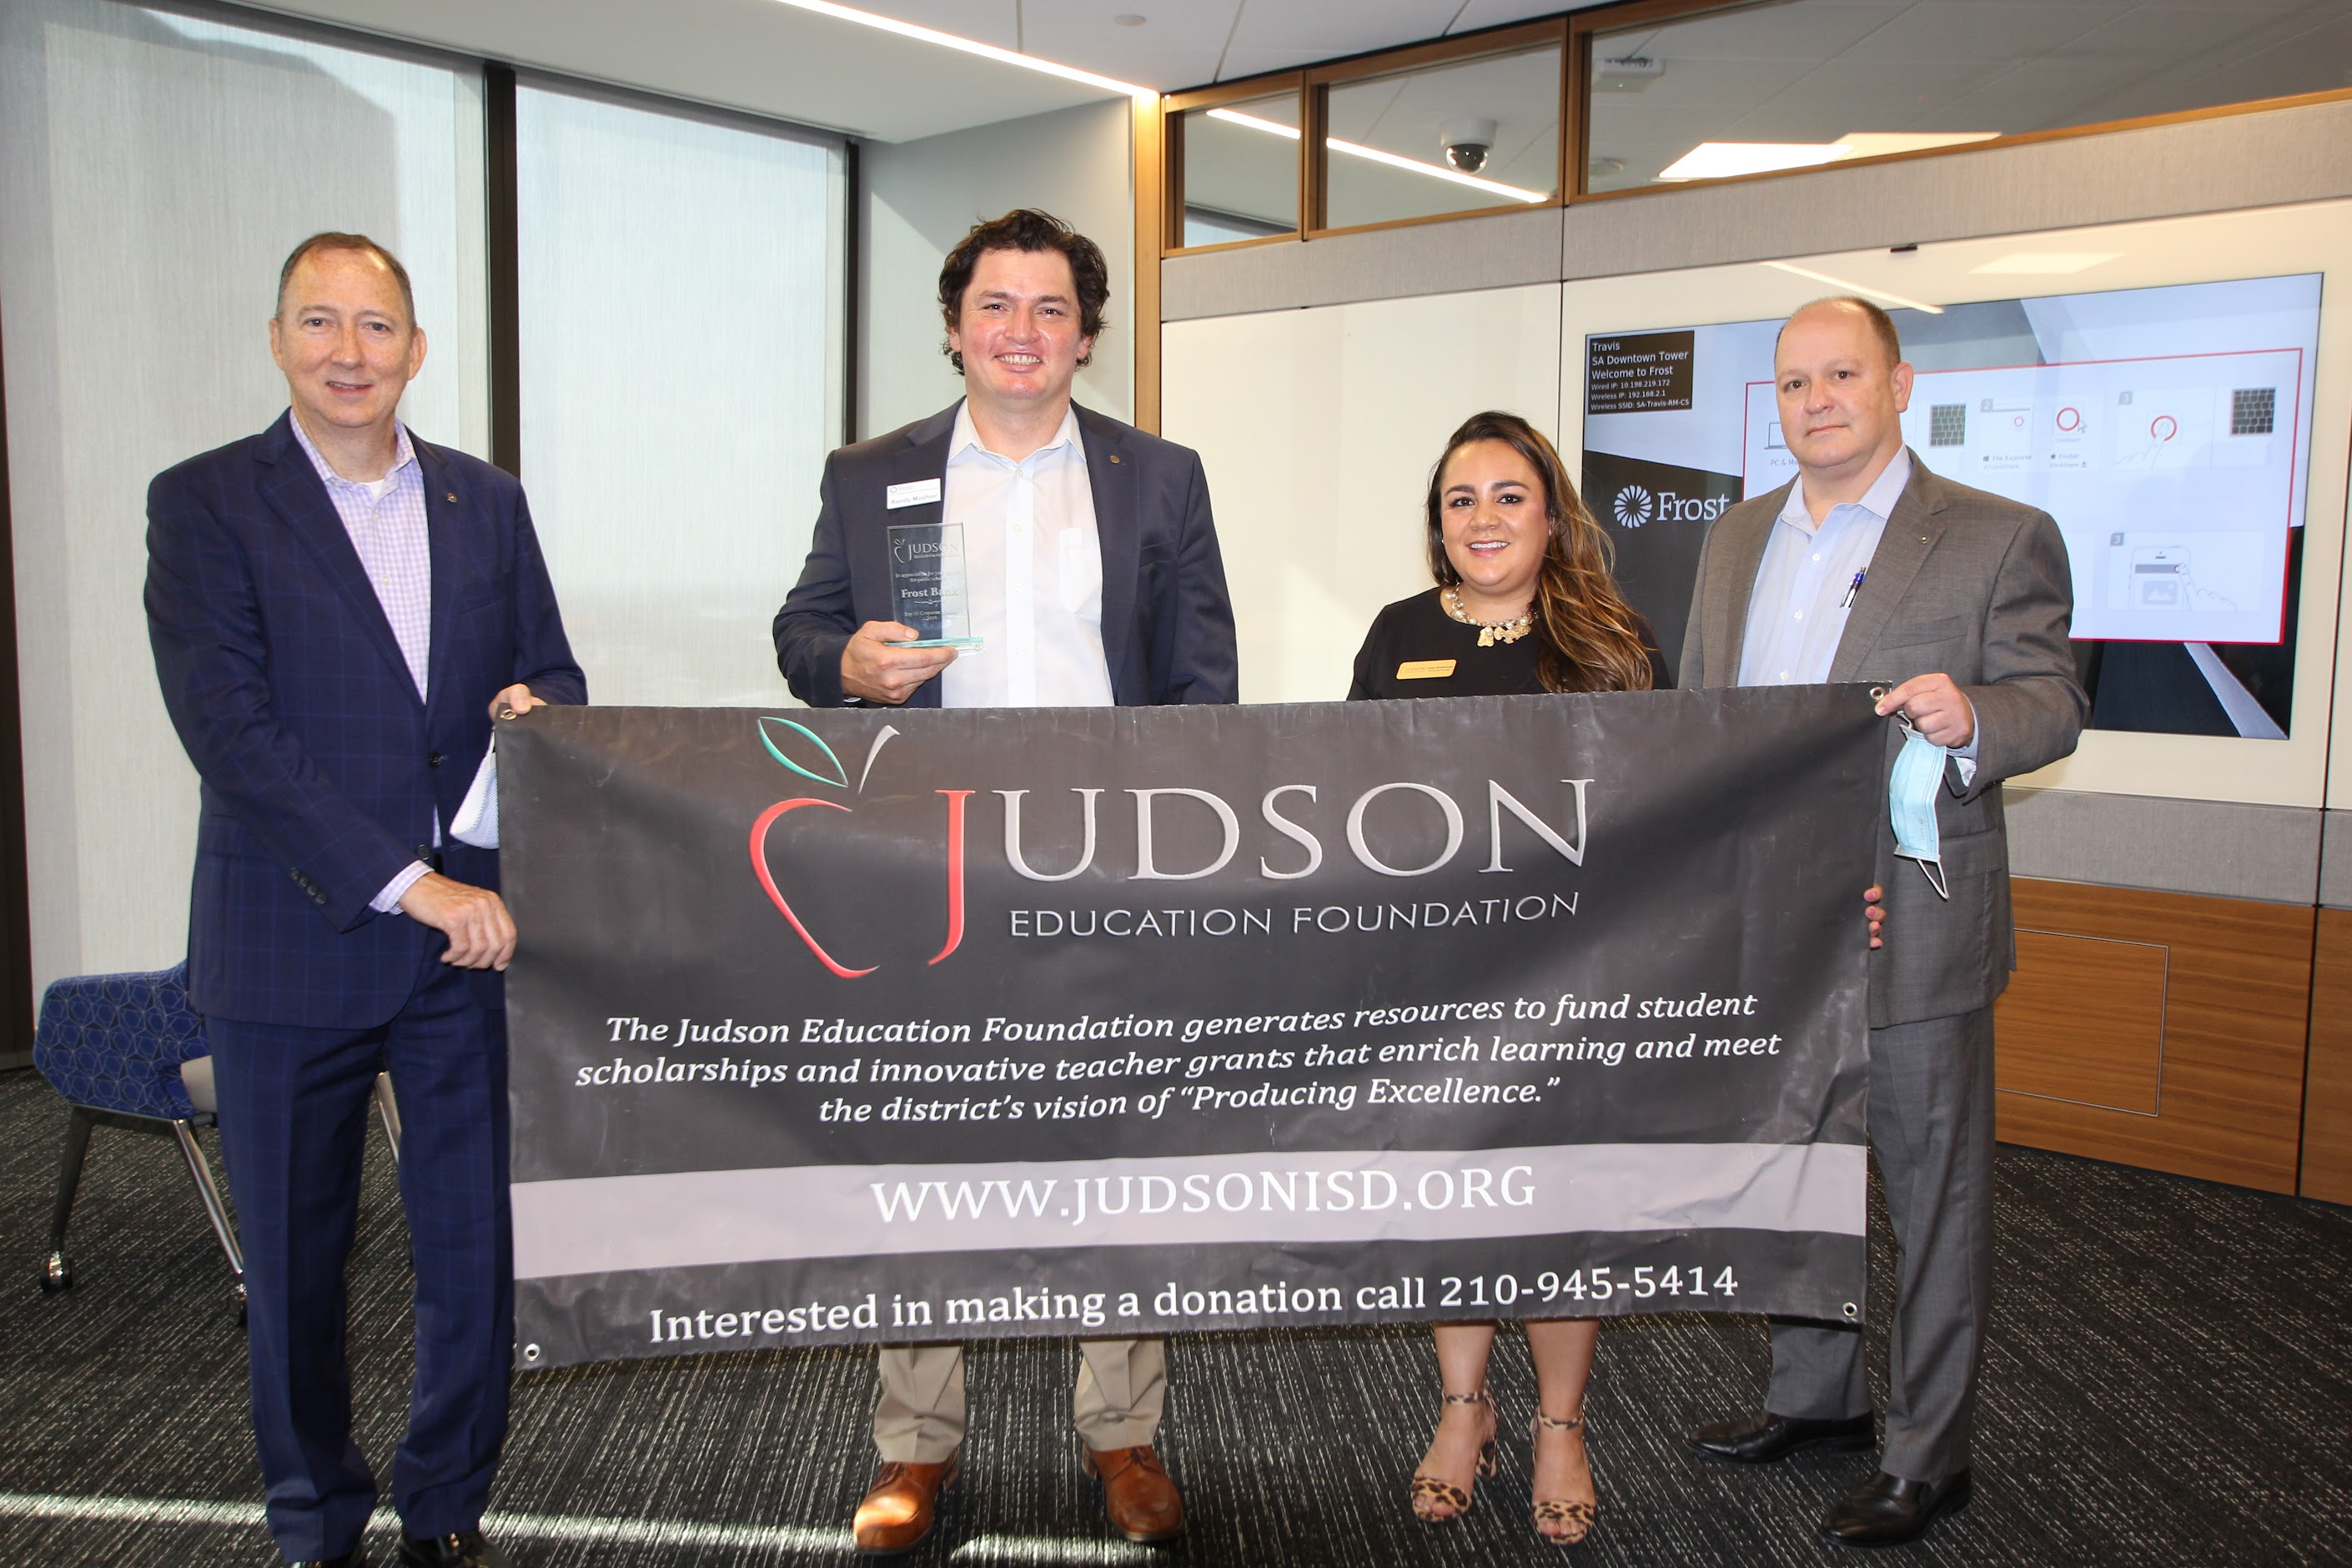 Judson Education Foundation Top 10 Sponsors